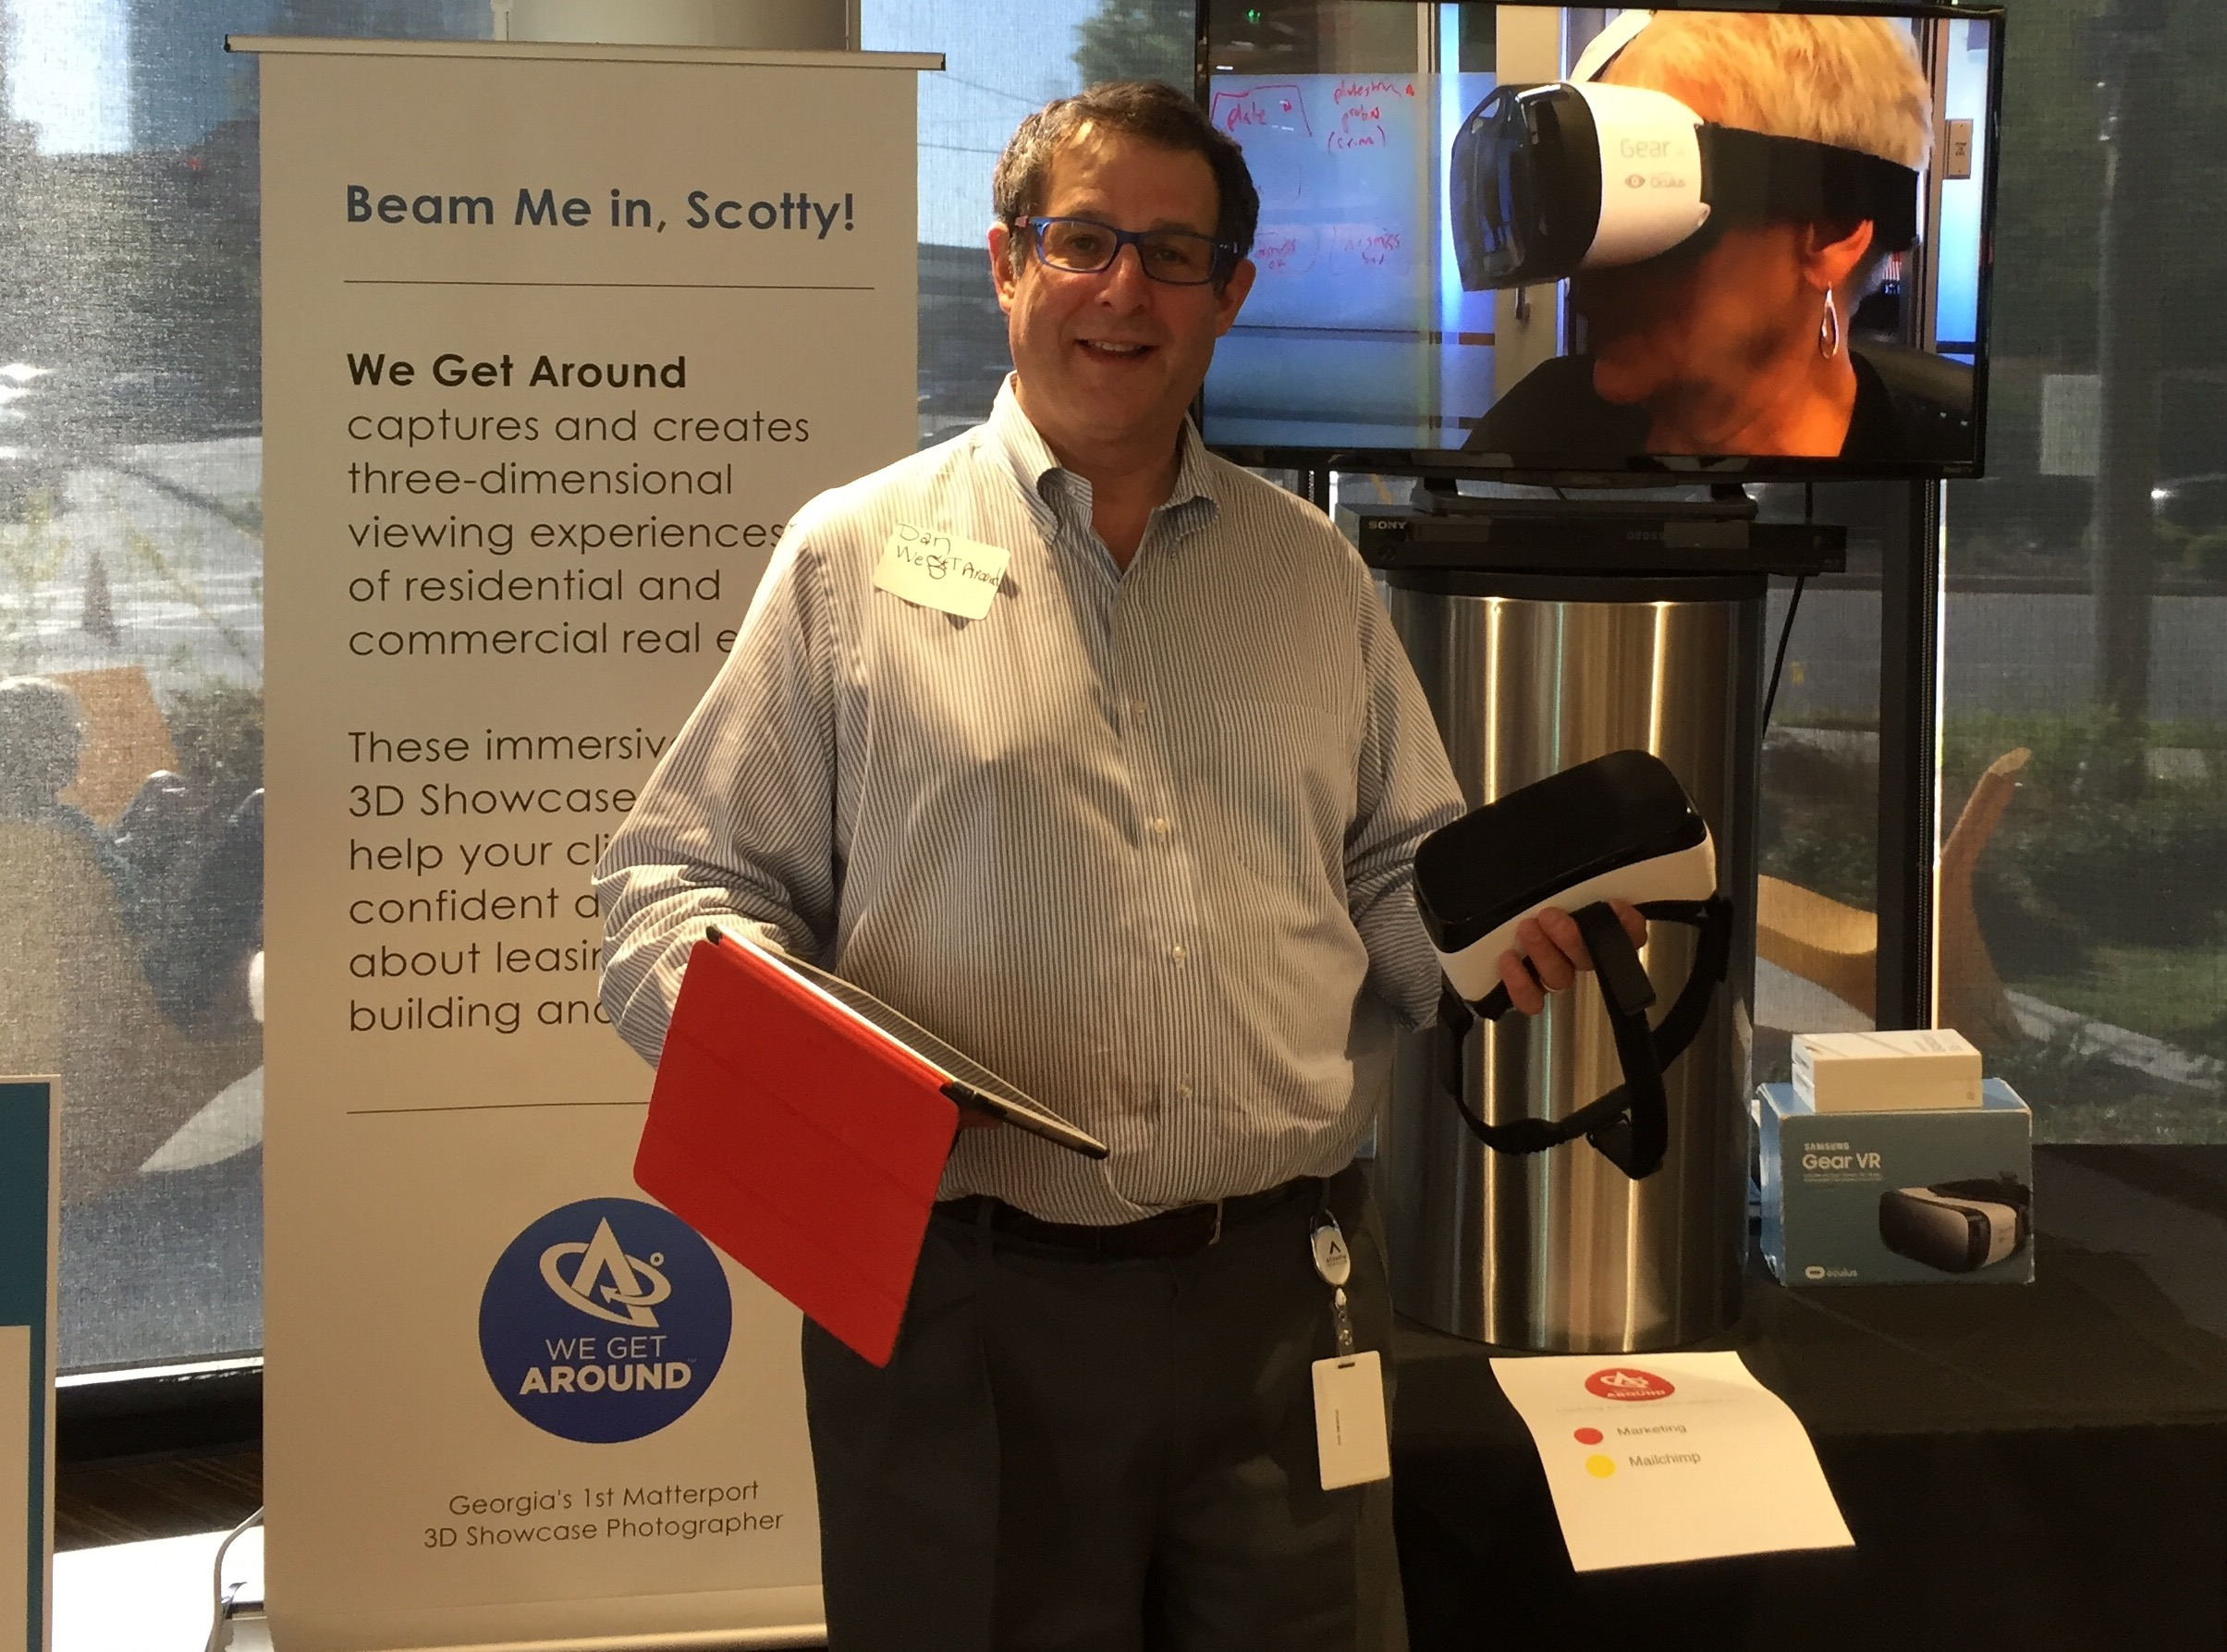 """We Get Around Founder, CEO and Chief Photographer Dan Smigrod at a Matterport Spaces (3D, VR) demo event. The shopping list below, includes the following items above: (left to right): Retractable banner; iPad Air 2, Gear VR, Samsung Galaxy 7 smartphone; Insignia 48"""" TV; Samsung Blu-ray TV; pedestal; HDMI cable. Other items not pictured: DVD burner; recordable DVDs; extension cord; power strip; duct tape; alcohol sterilizing pads and luggage cart."""